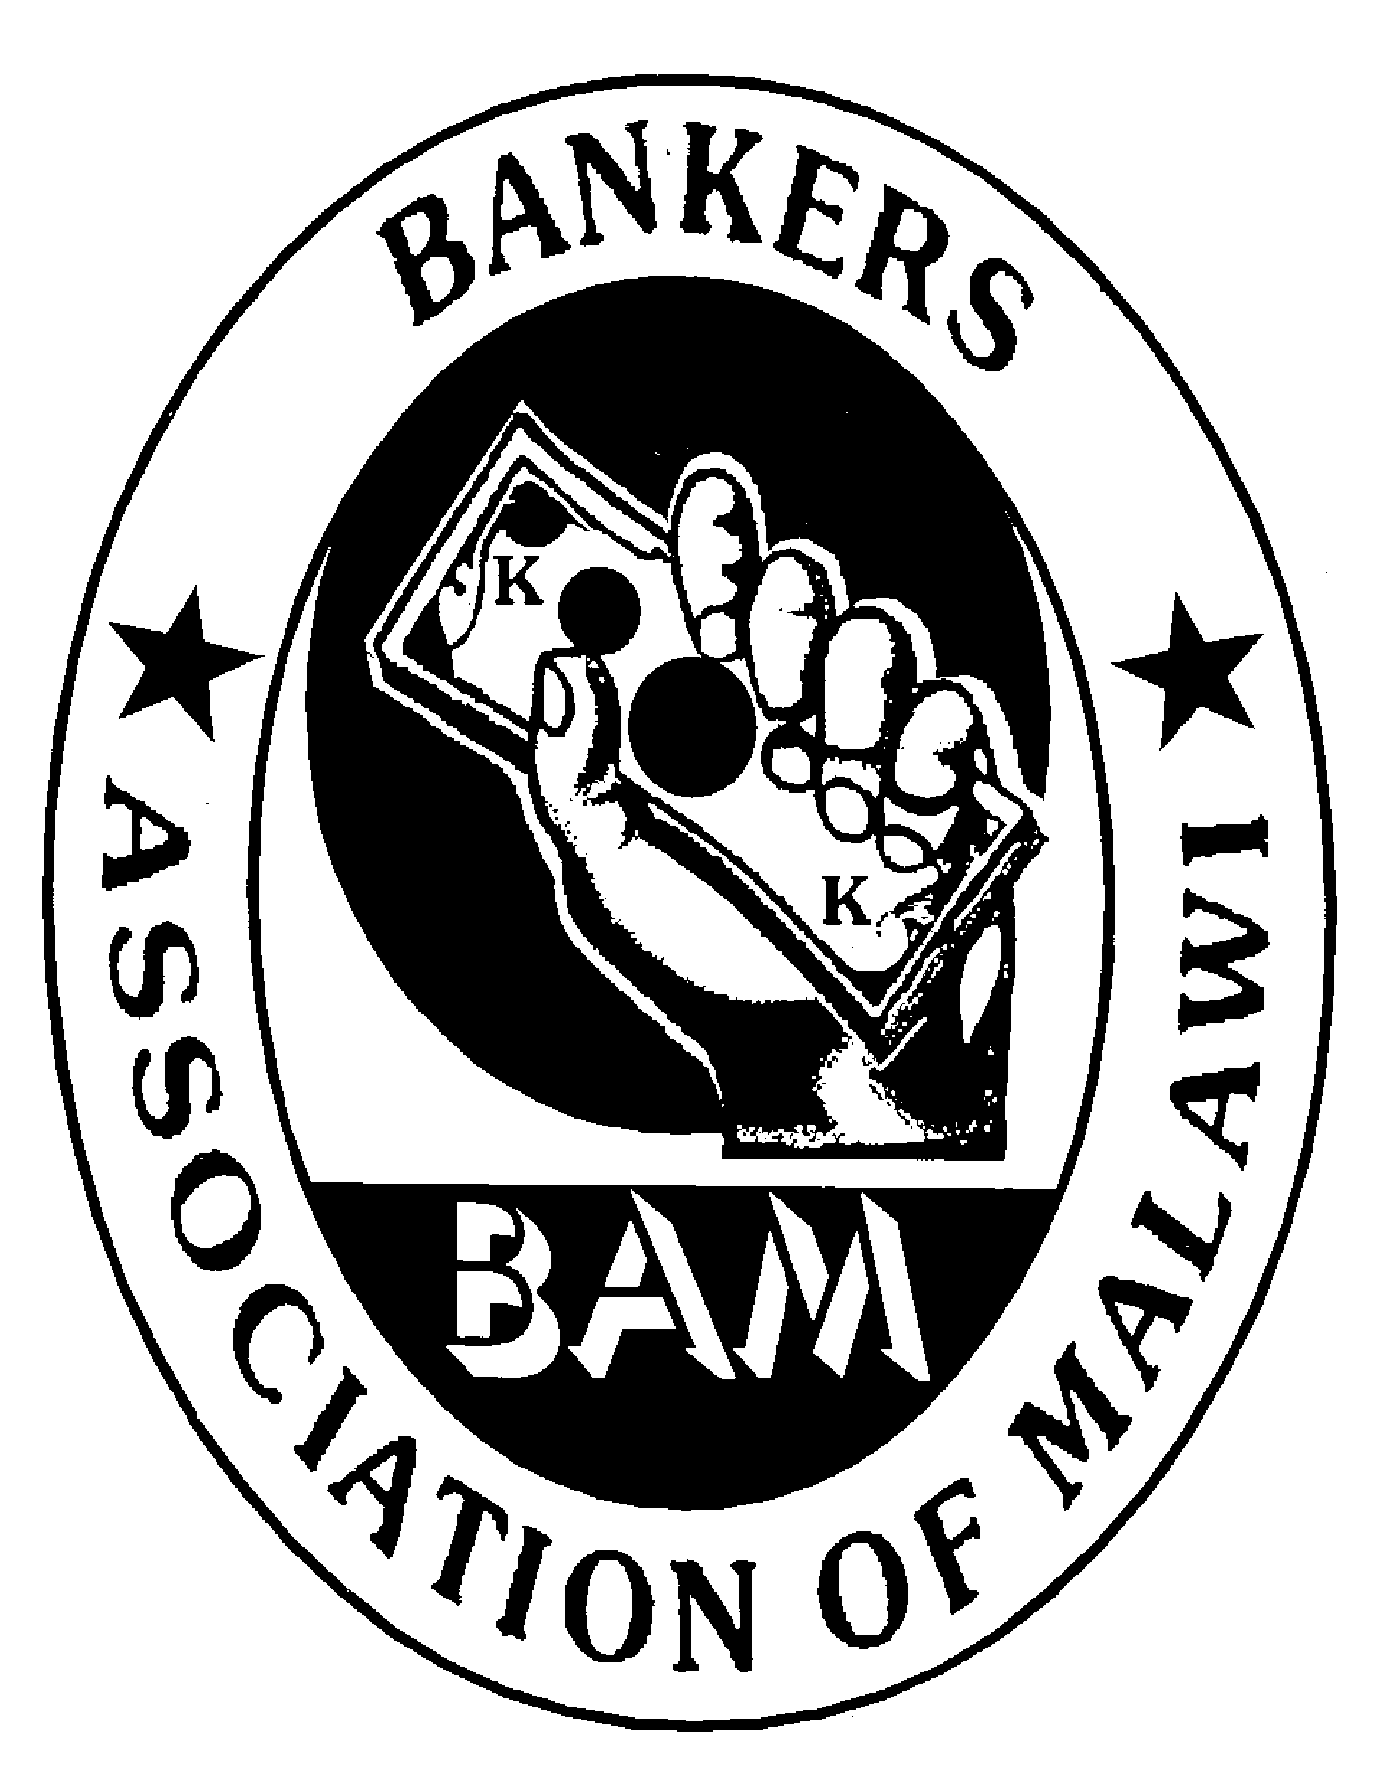 BAM PLANS FINANCIAL LITERACY...